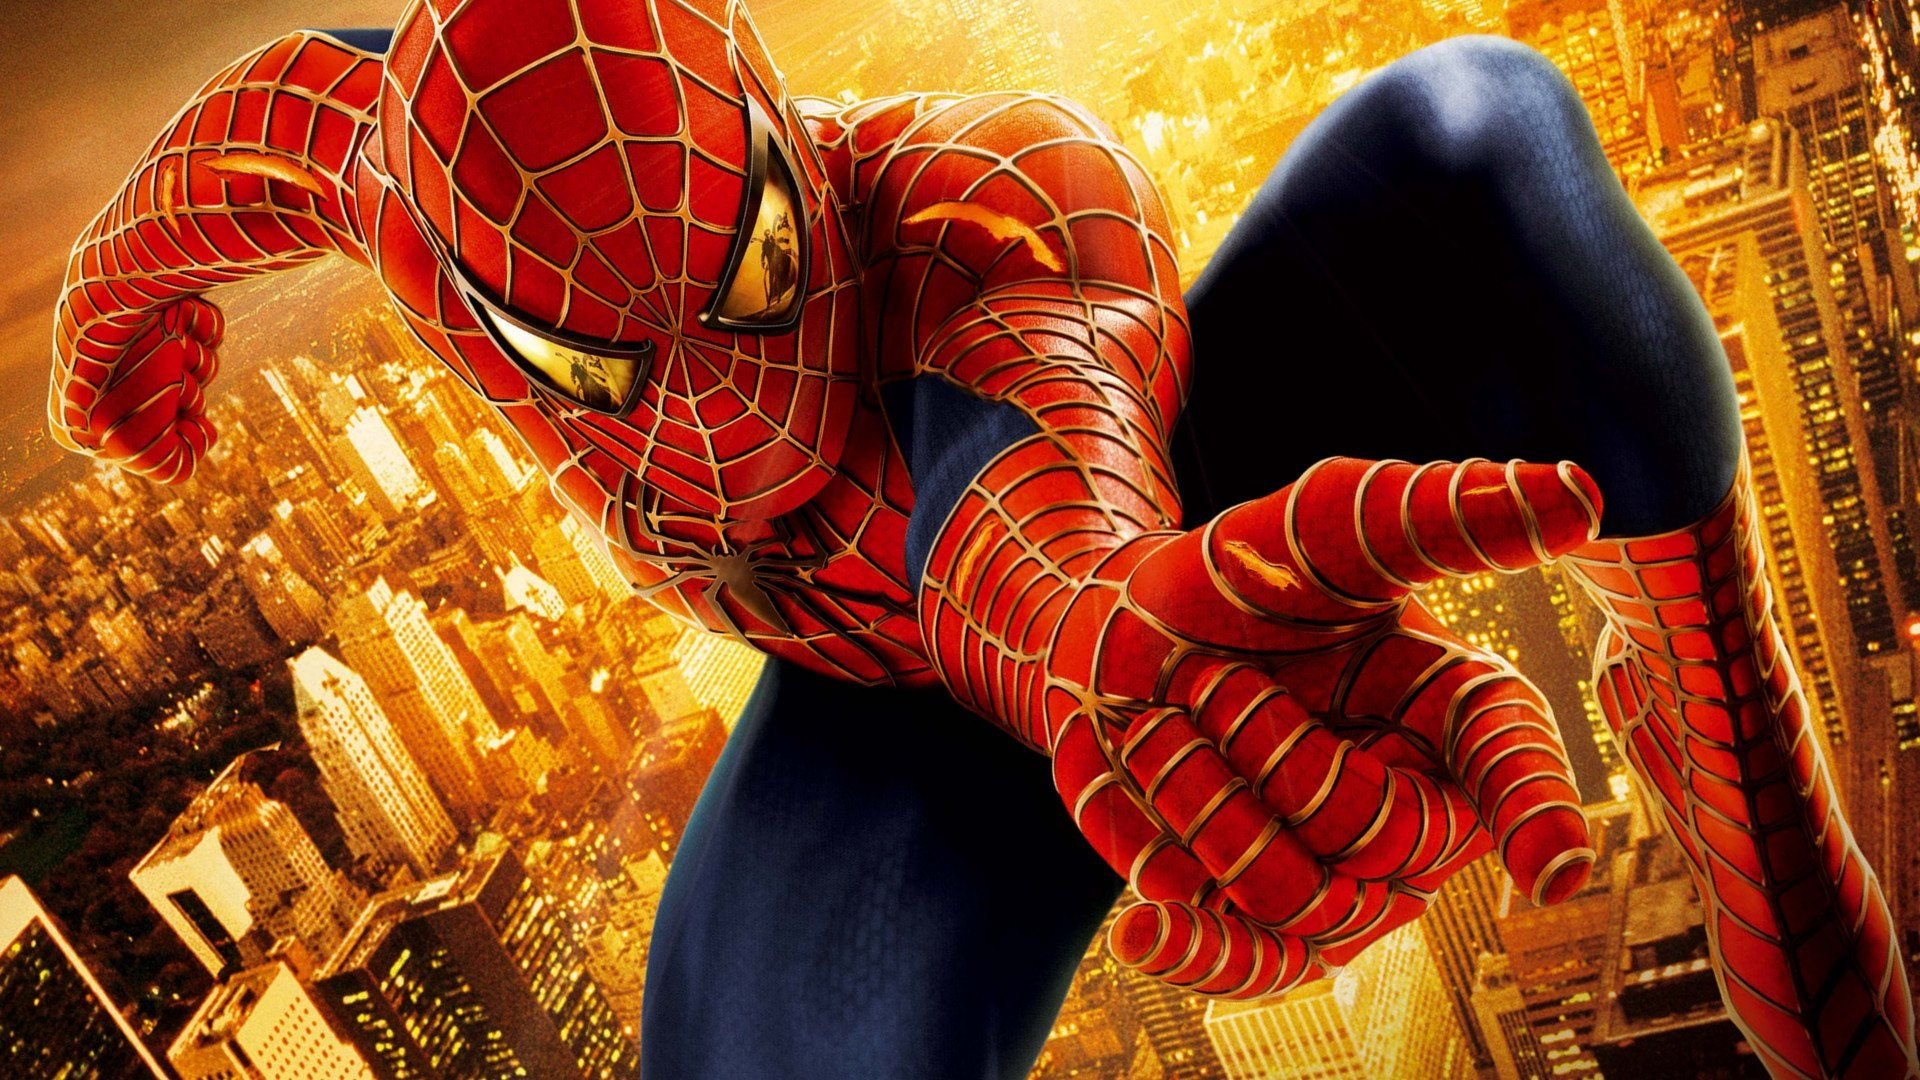 Spider-Man 2 Wallpapers - Top Free Spider-Man 2 ...